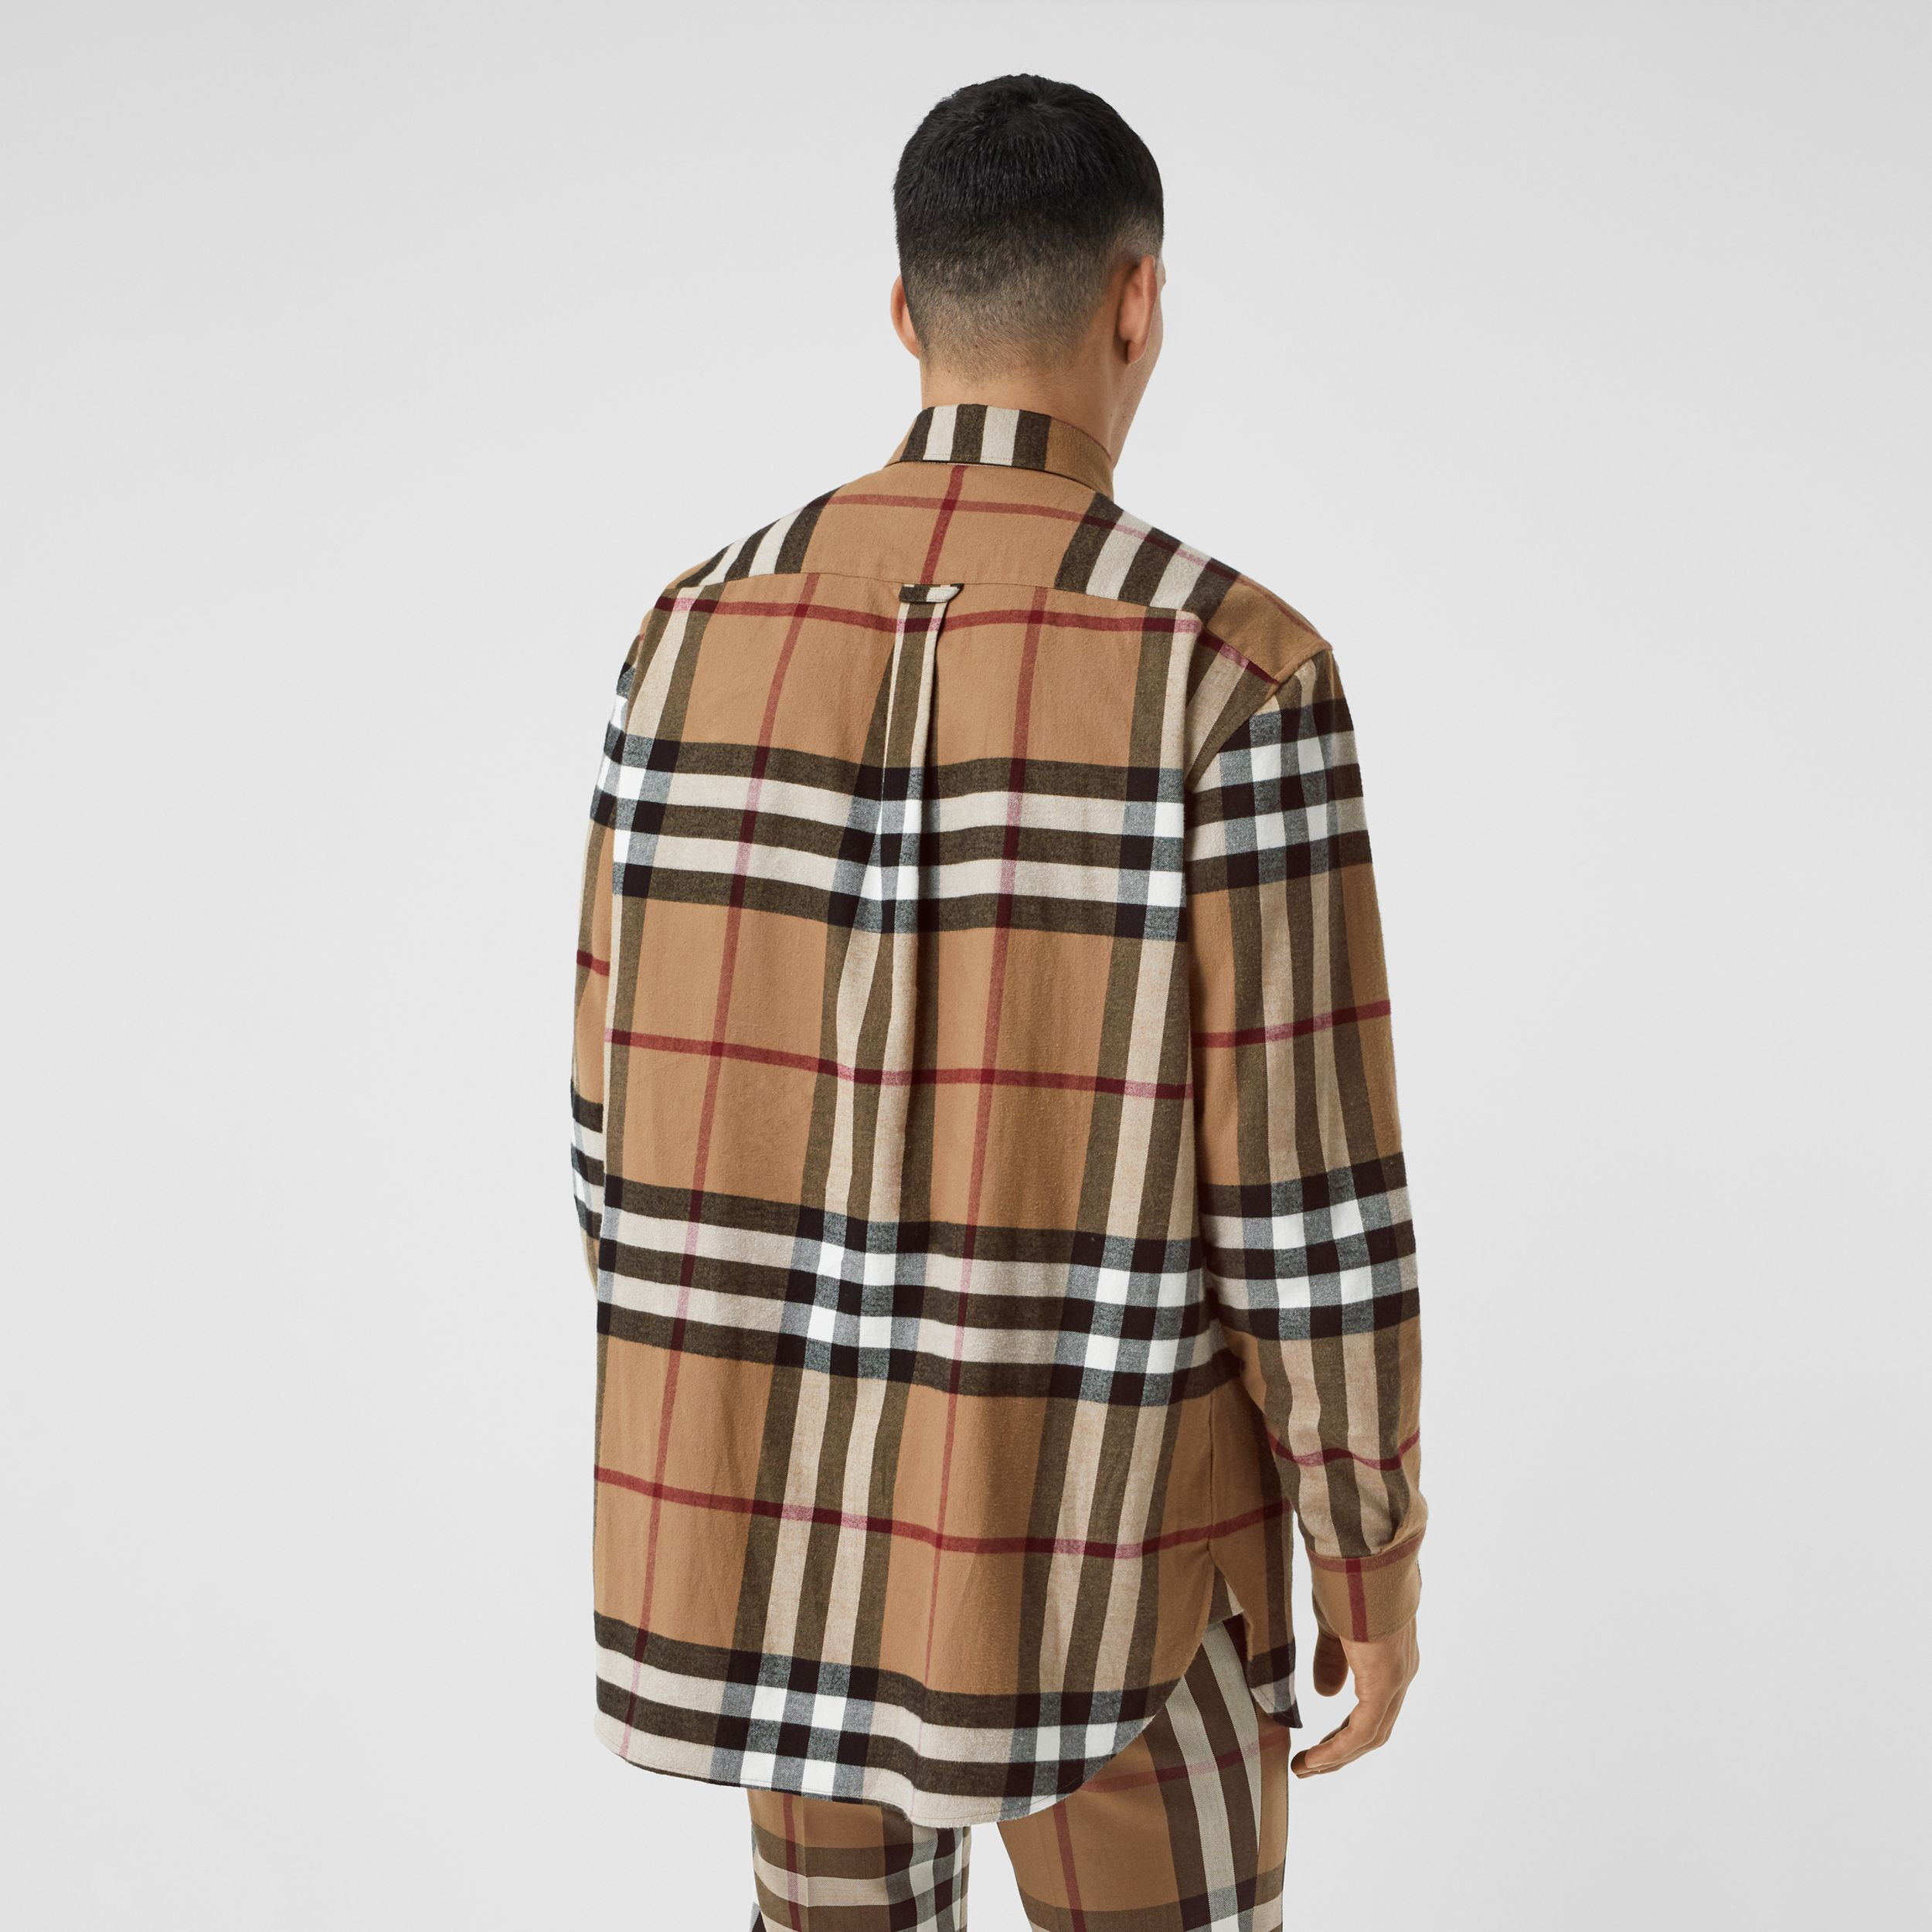 Relaxed Fit House Check Cotton Flannel Shirt in Birch Brown | Burberry Canada - 3